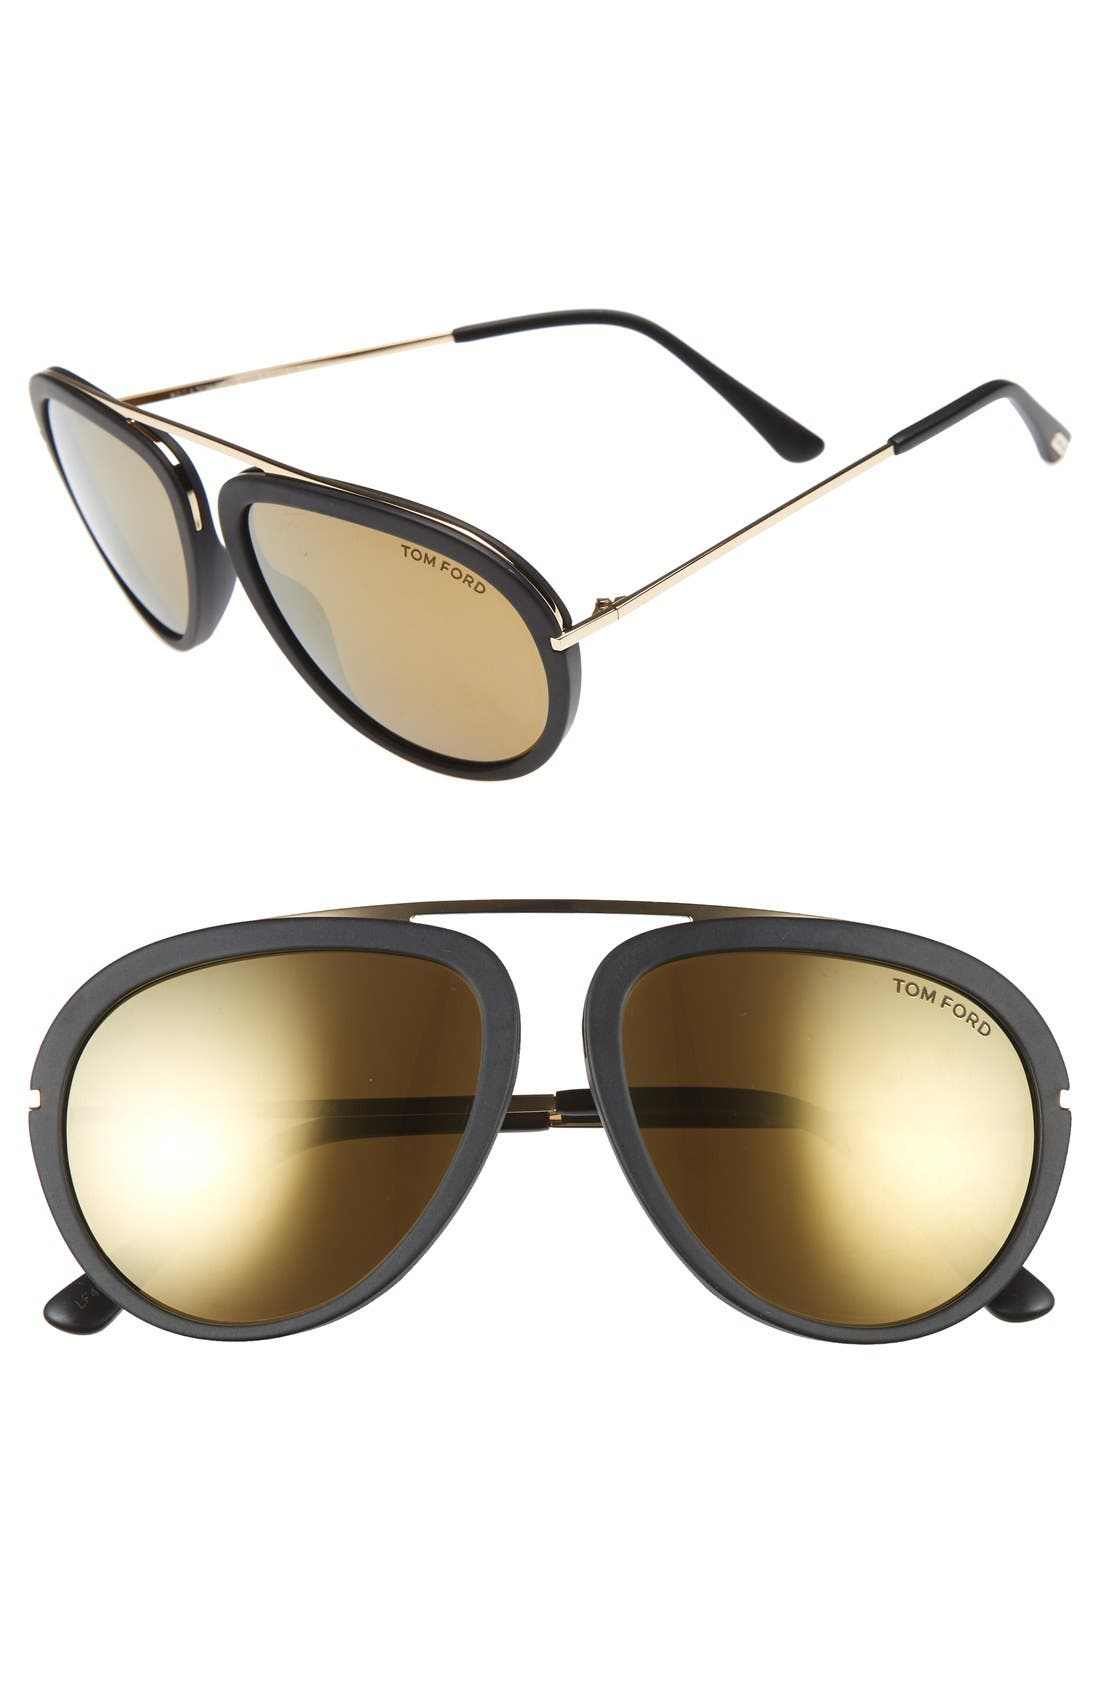 Main Image - Tom Ford 'Stacy' 57mm Sunglasses